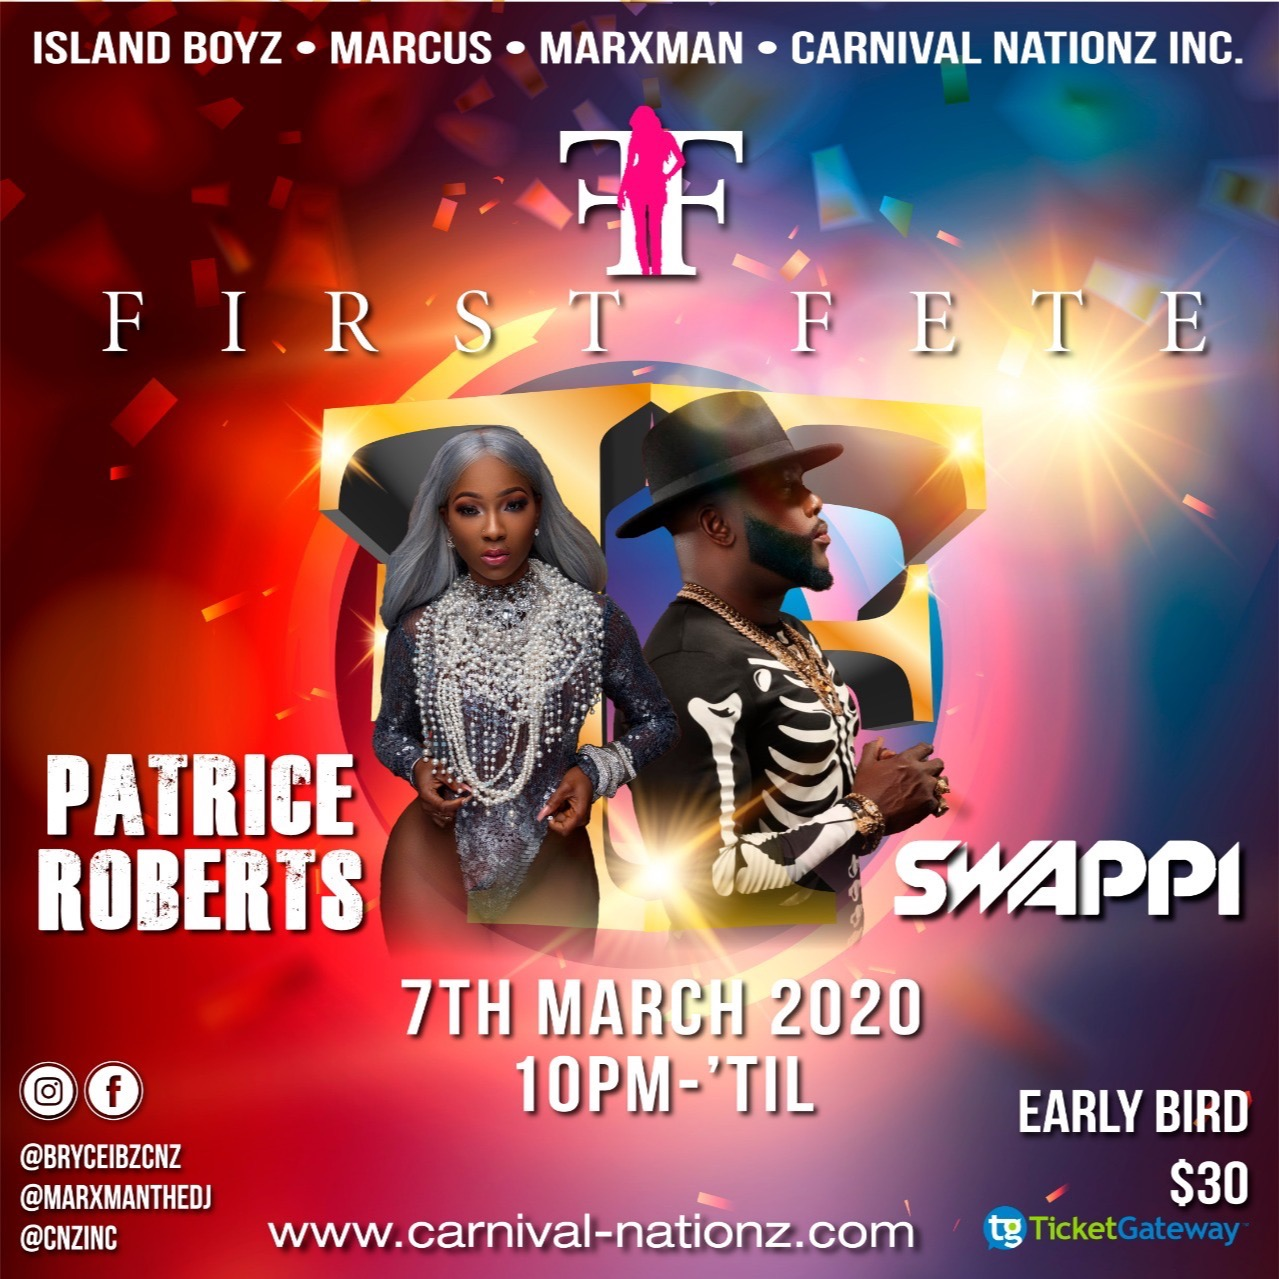 FIRST FETE